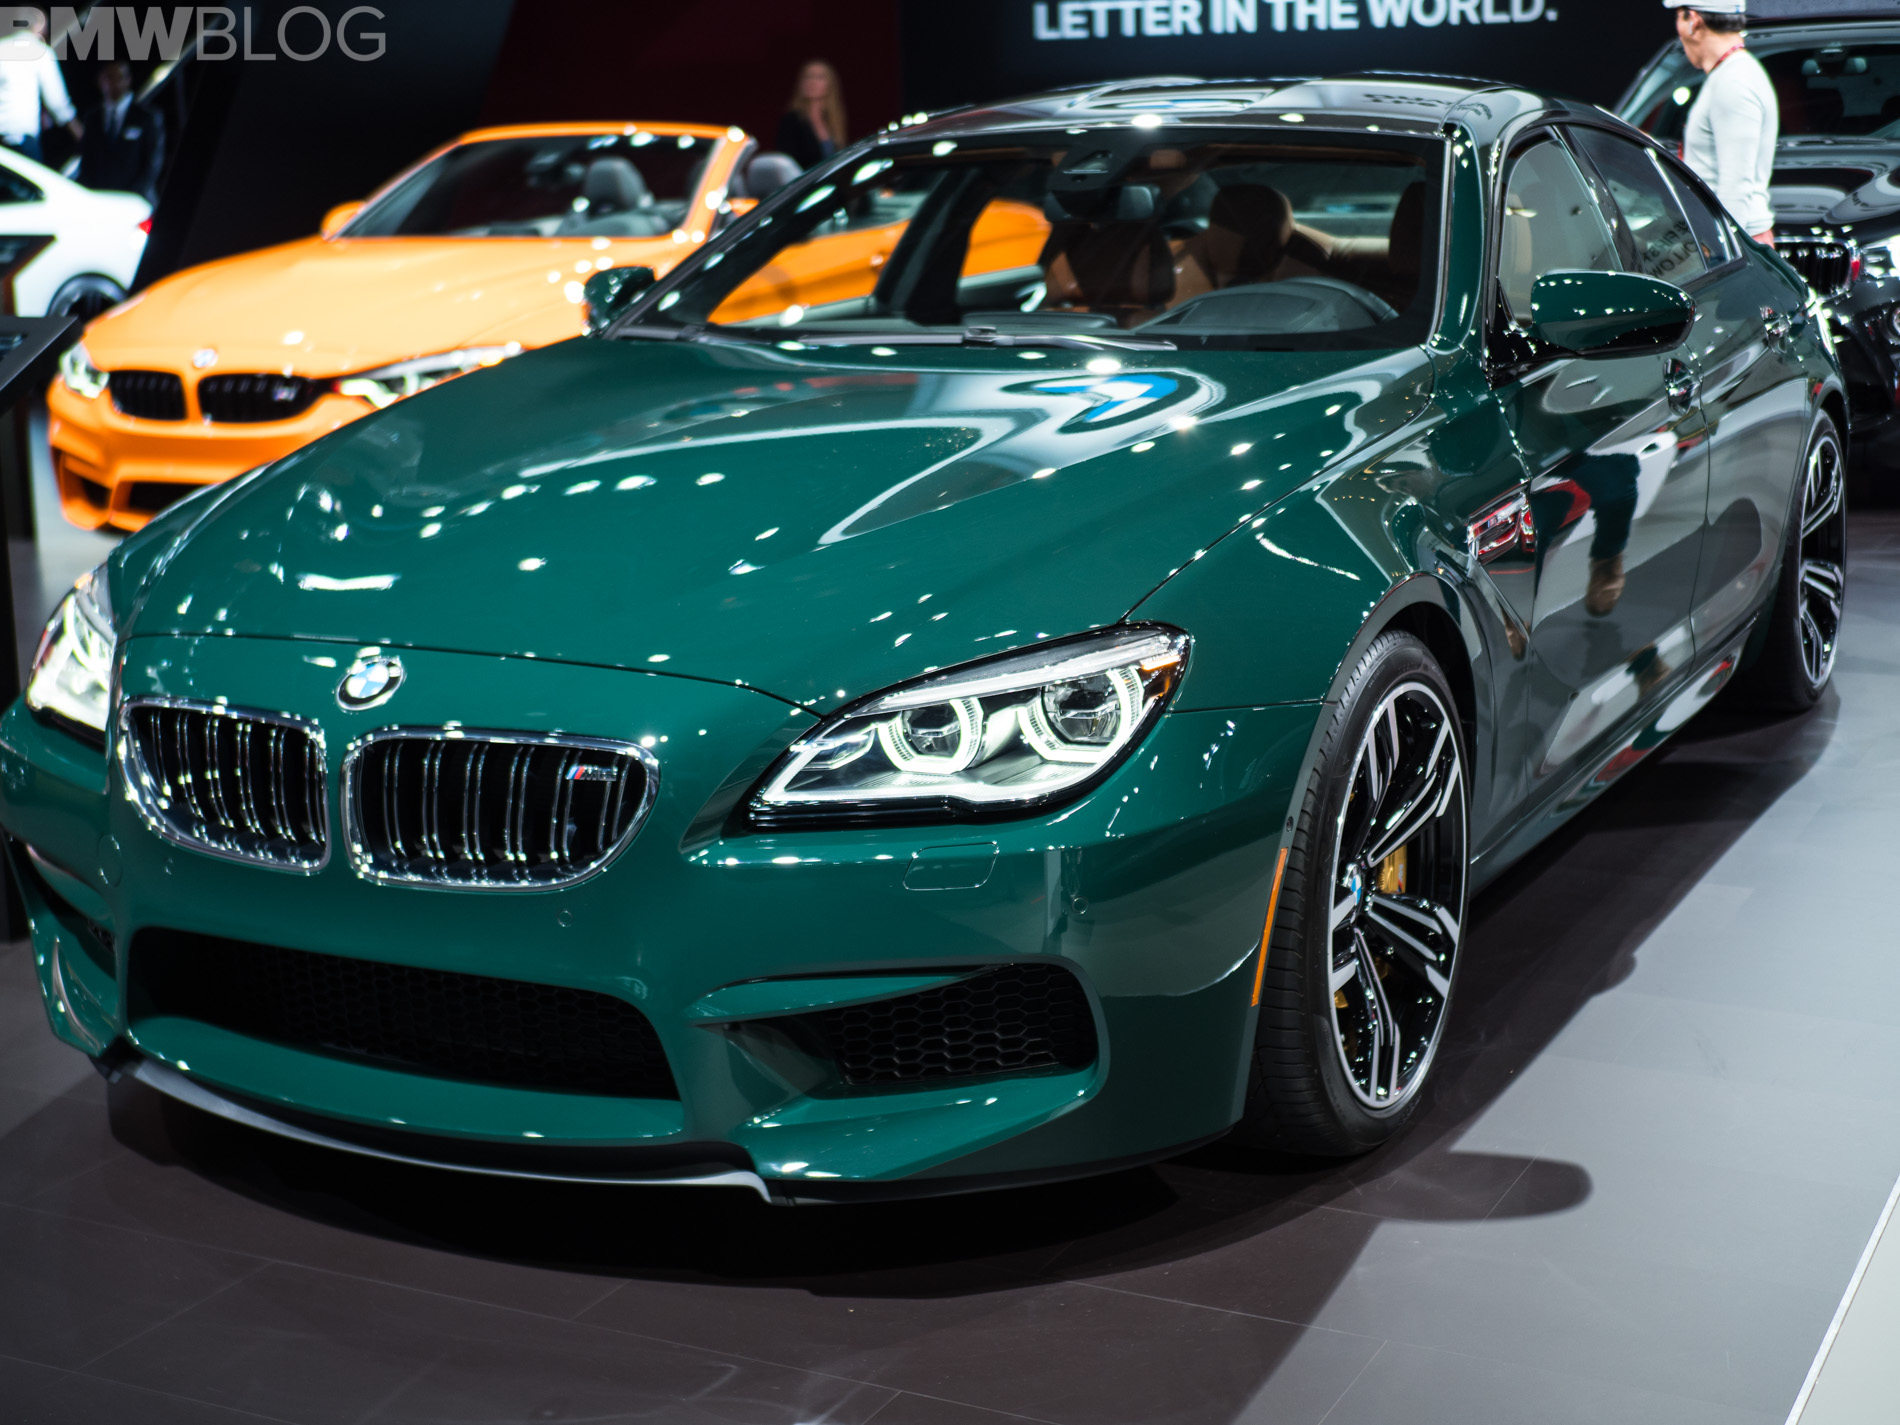 2018 nyias bmw m6 gran coupe in british racing green. Black Bedroom Furniture Sets. Home Design Ideas